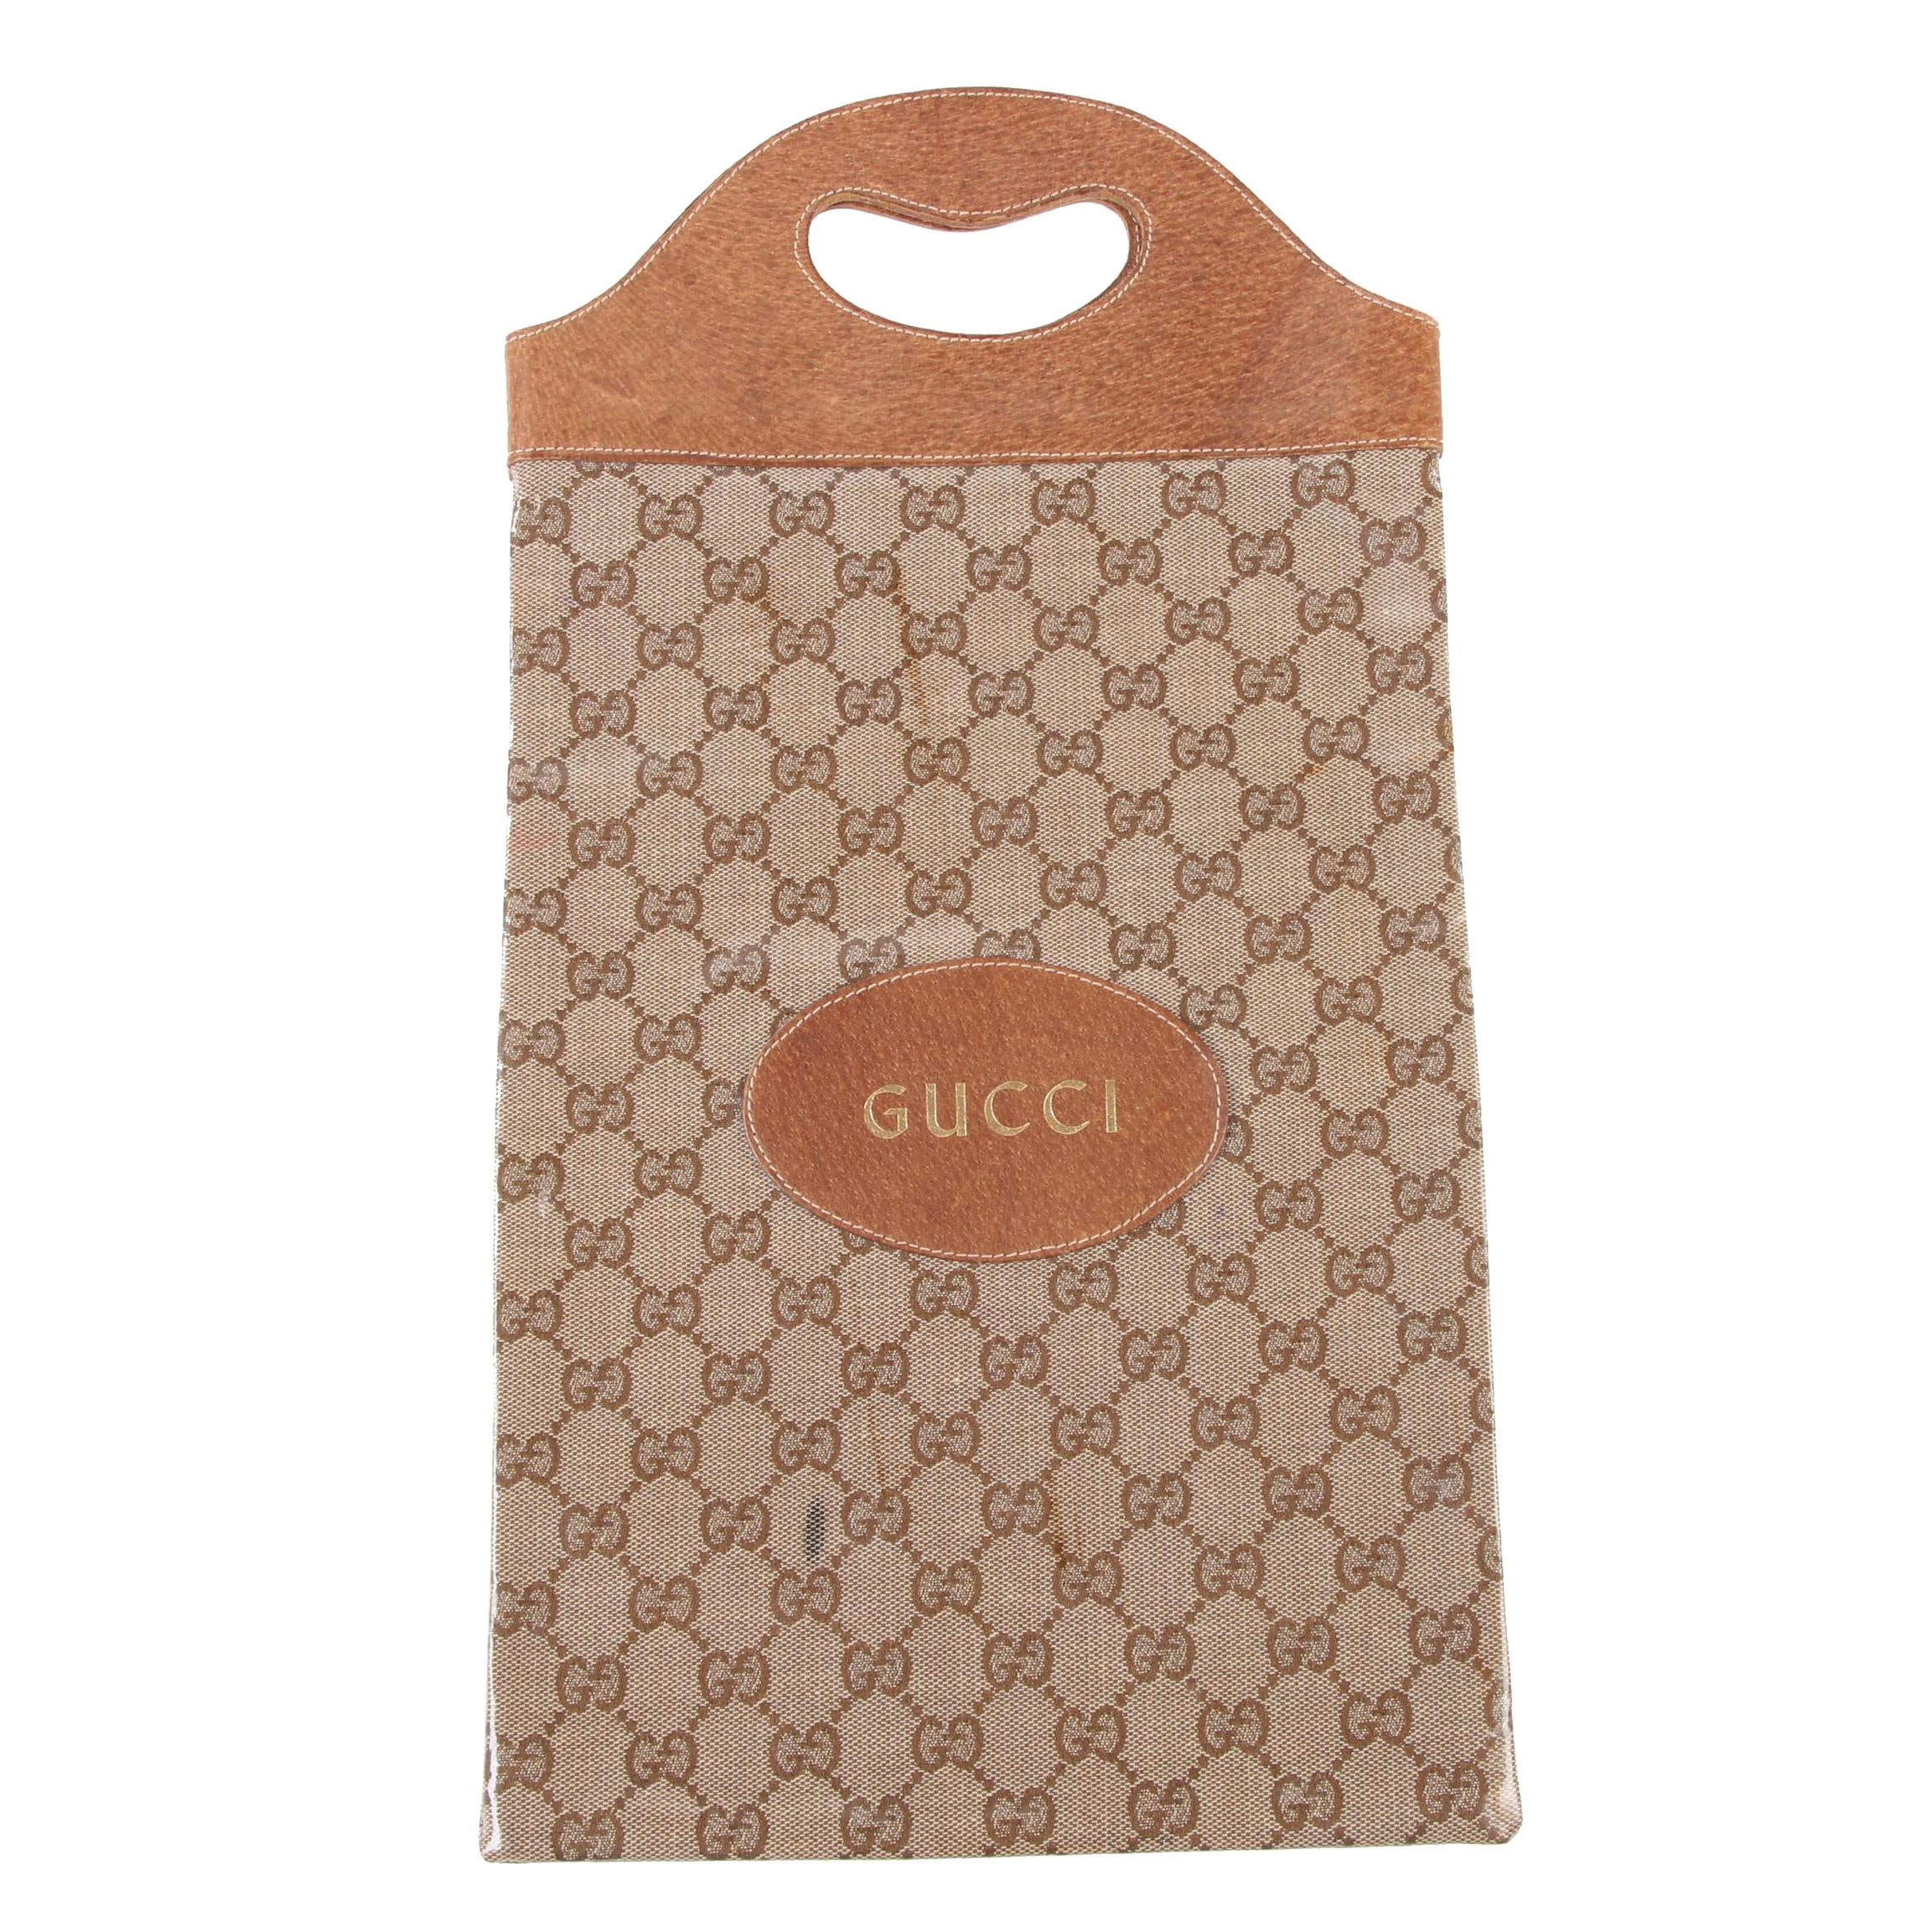 Gucci Wine Tote in GG Waterproof Coated Canvas, Late 20th Century